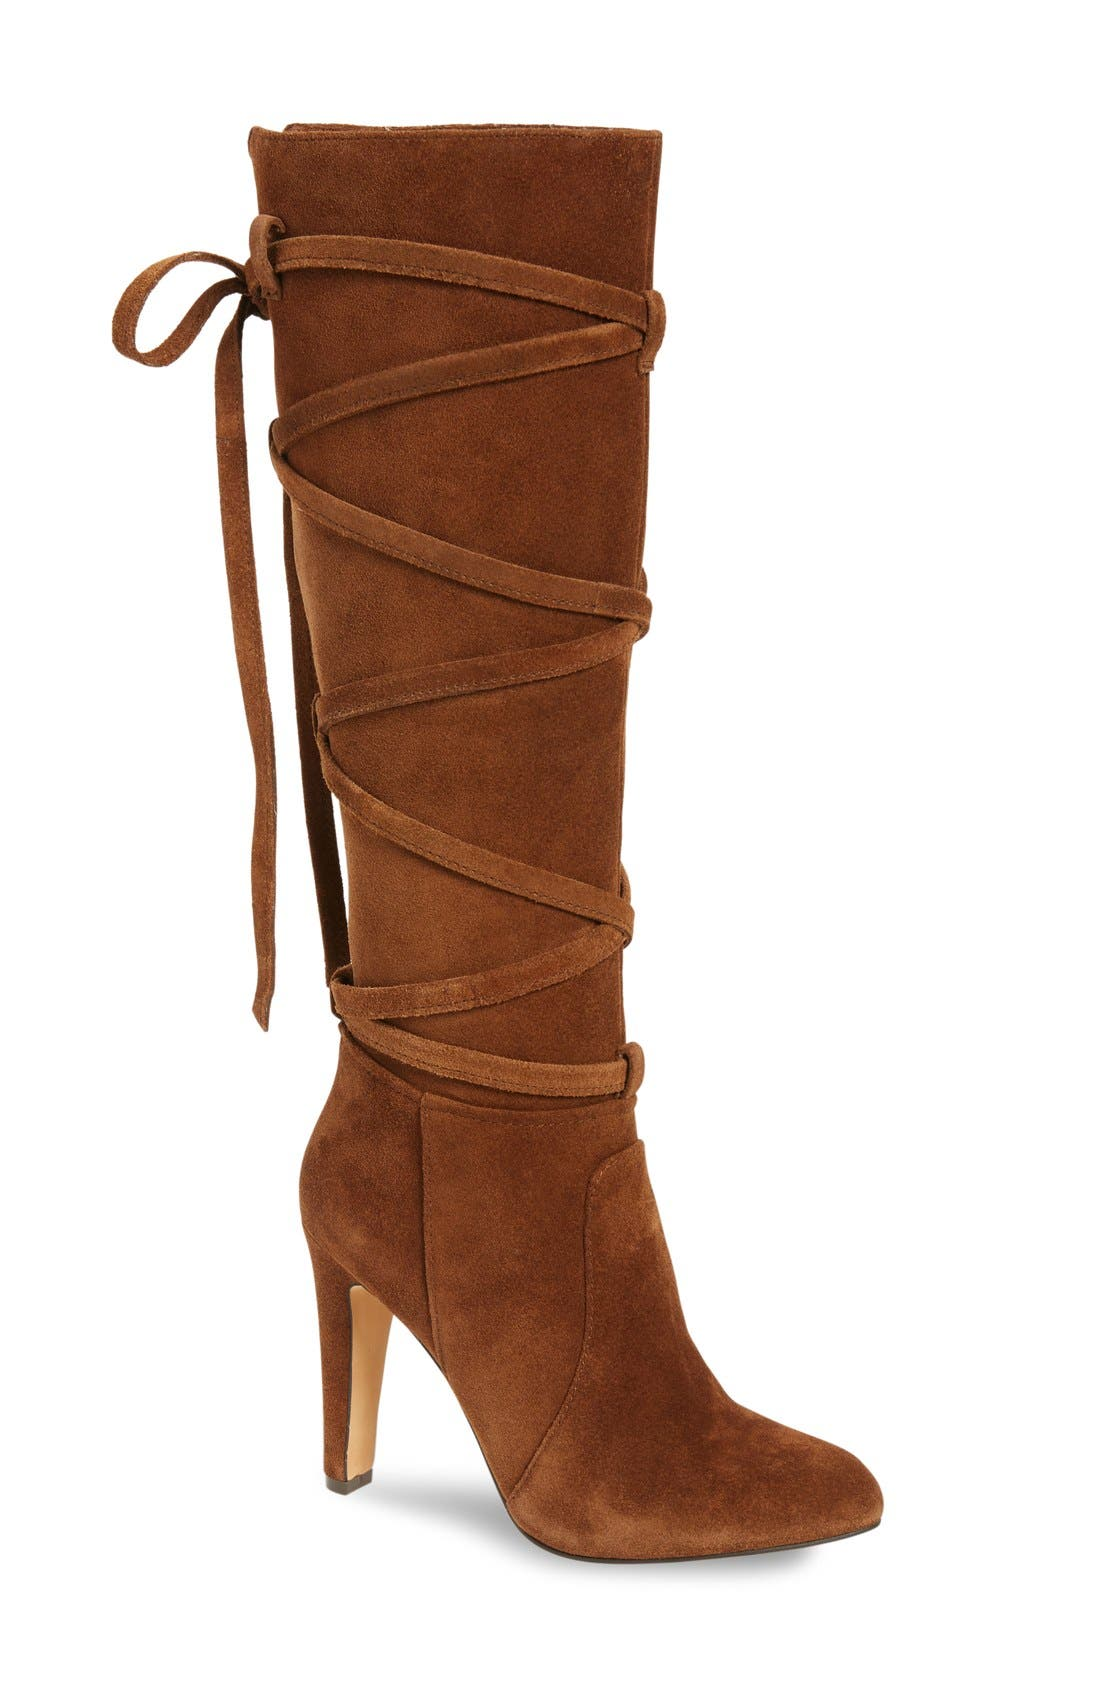 Main Image - Vince Camuto 'Millay' Knee High Boot (Women)